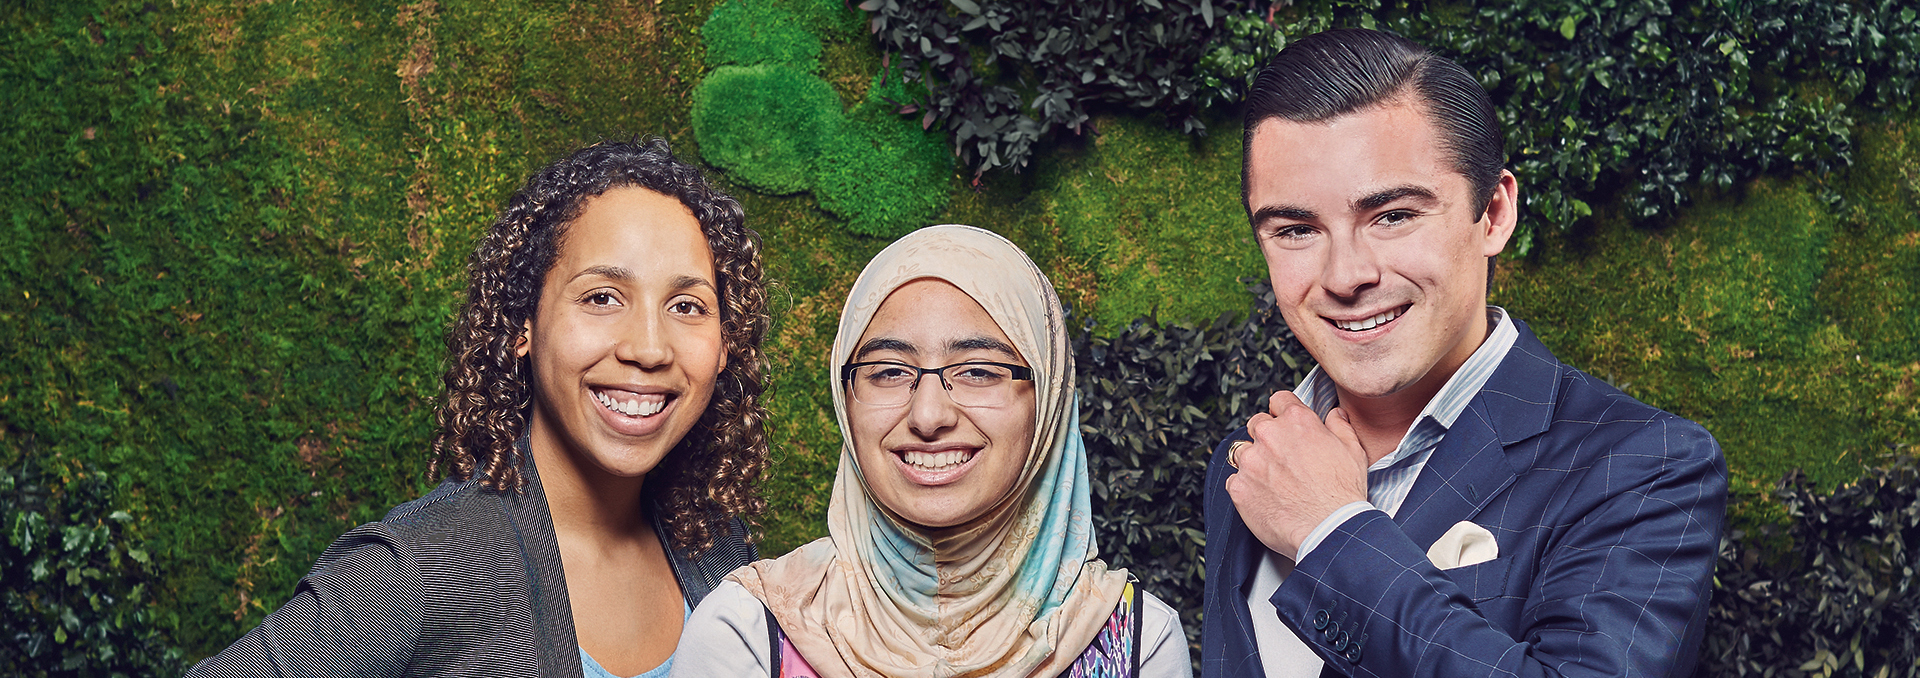 Ramata Tarawally with students in front of the Green Wall in the Buttery